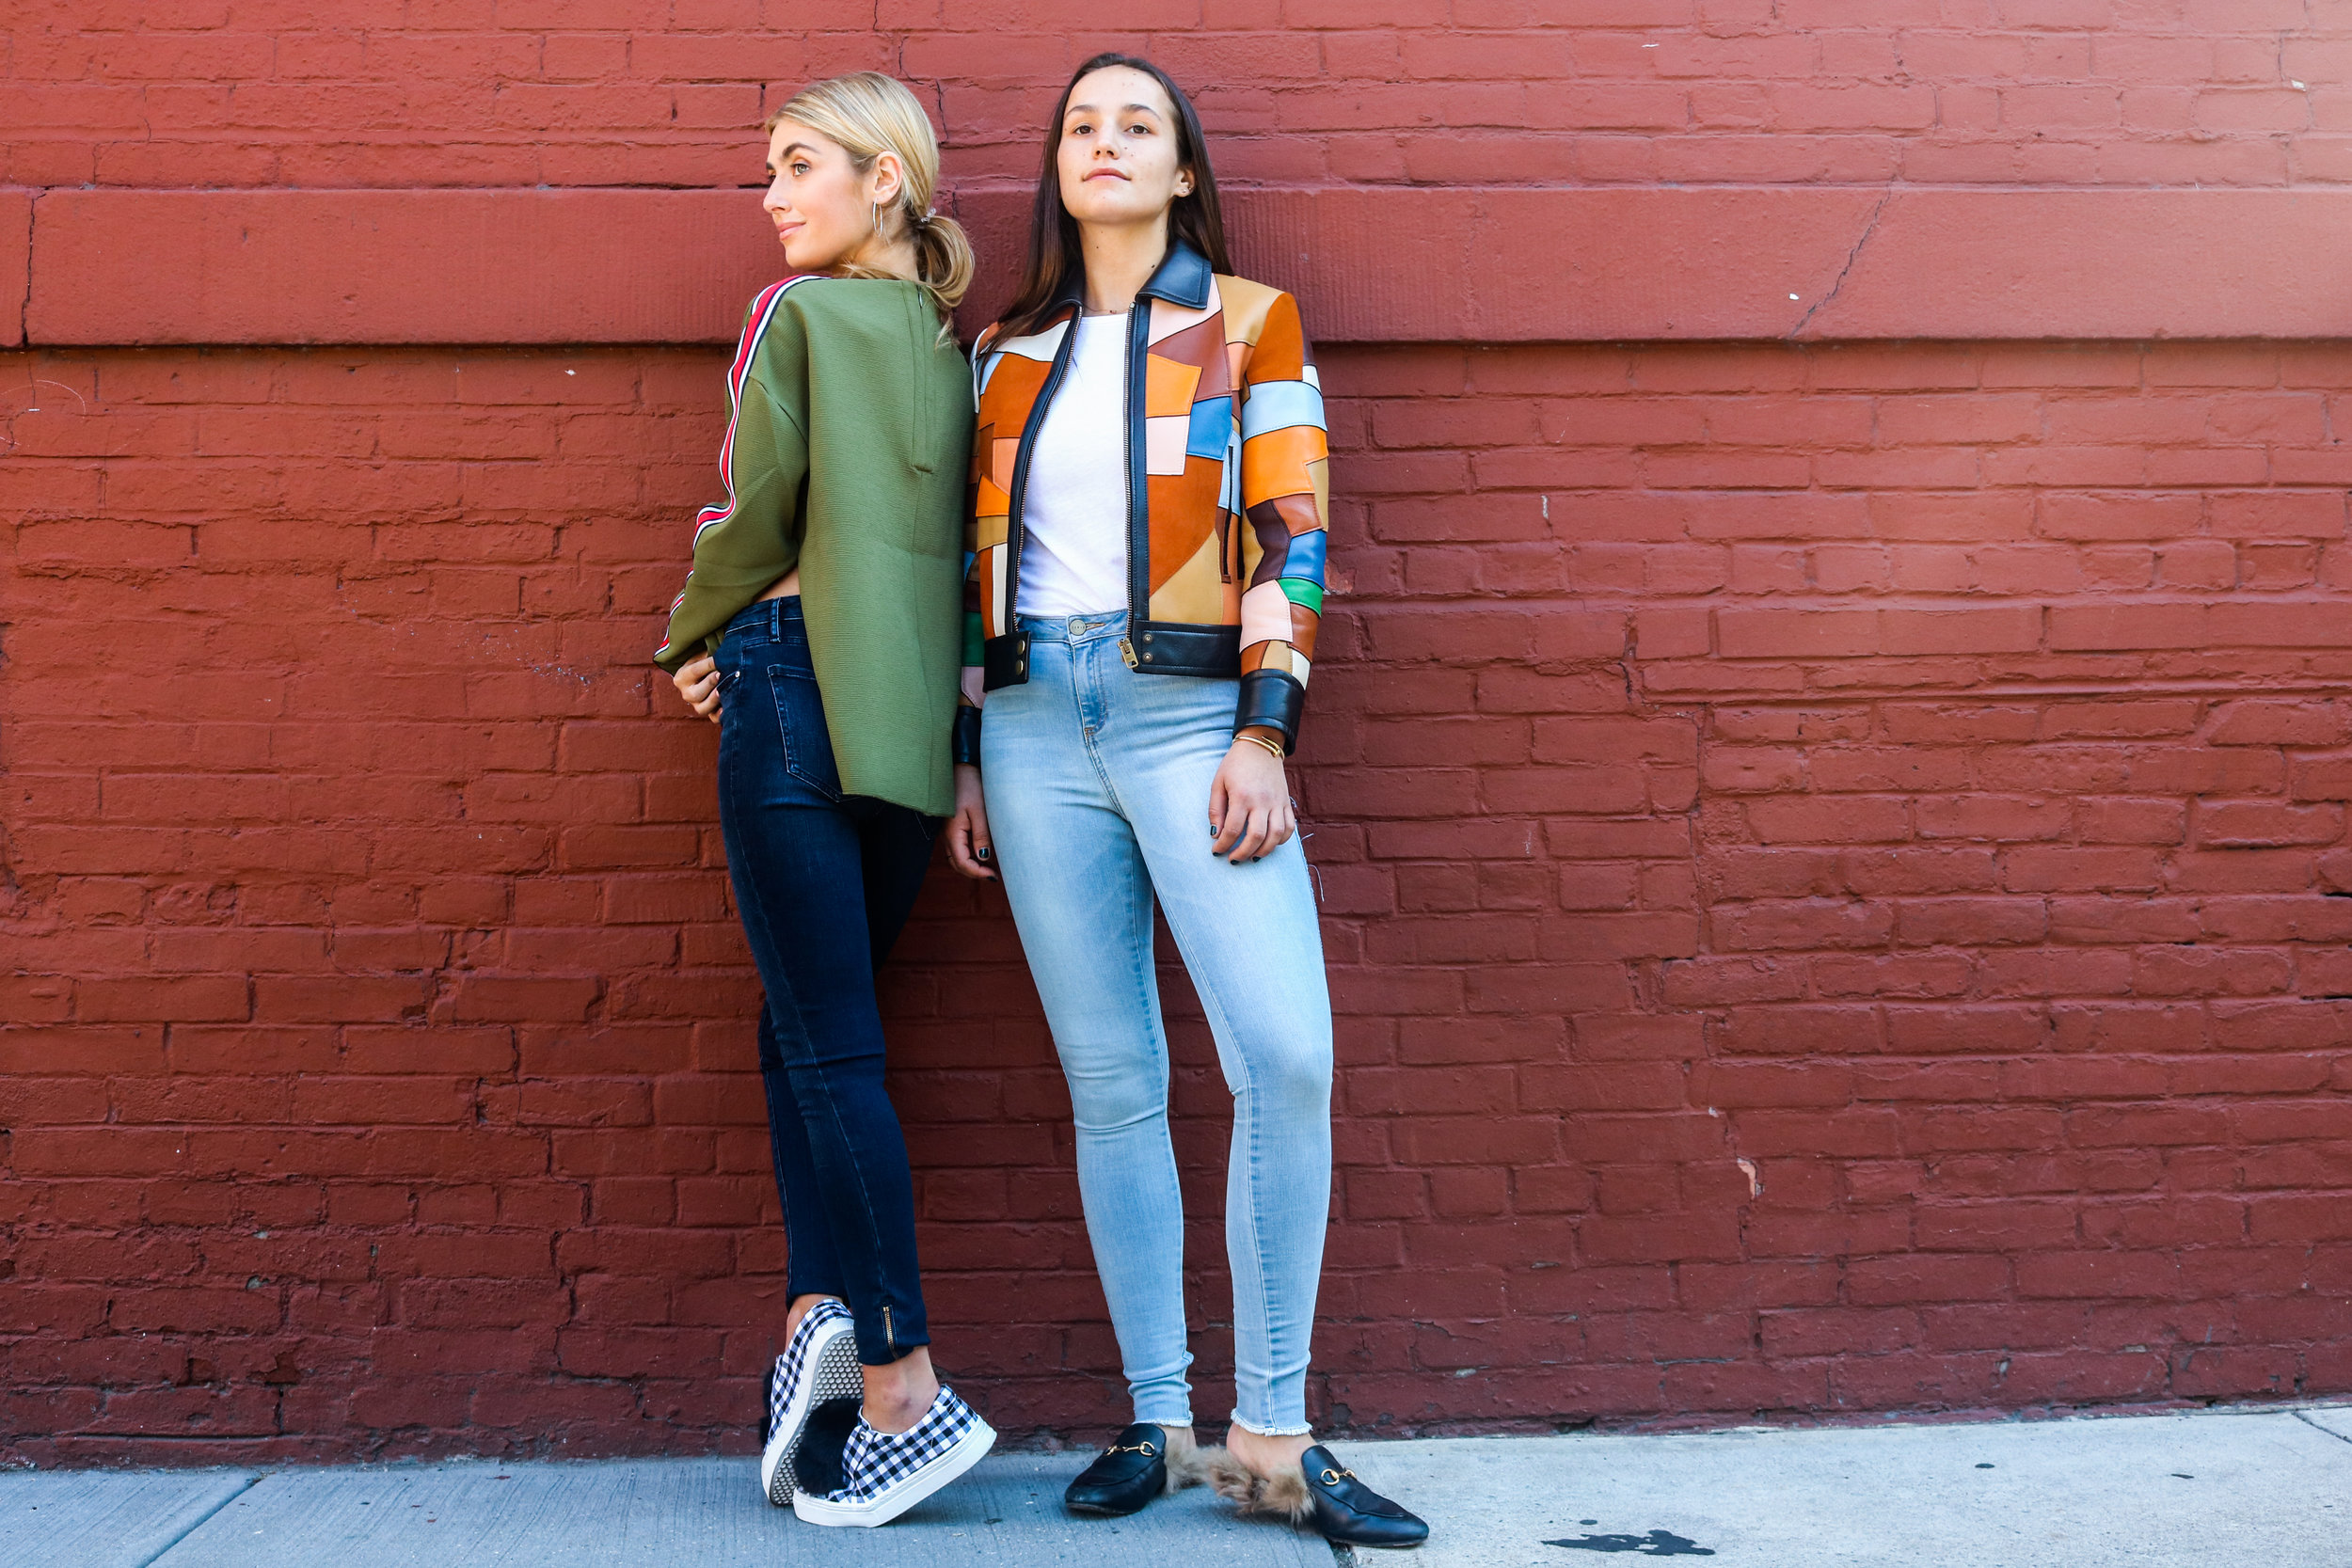 SOPHIE AND CHARLOTTE BICKLEY YIN 2MY YANG SISTER FASHION BLOGGERS NYC JOMAD POST